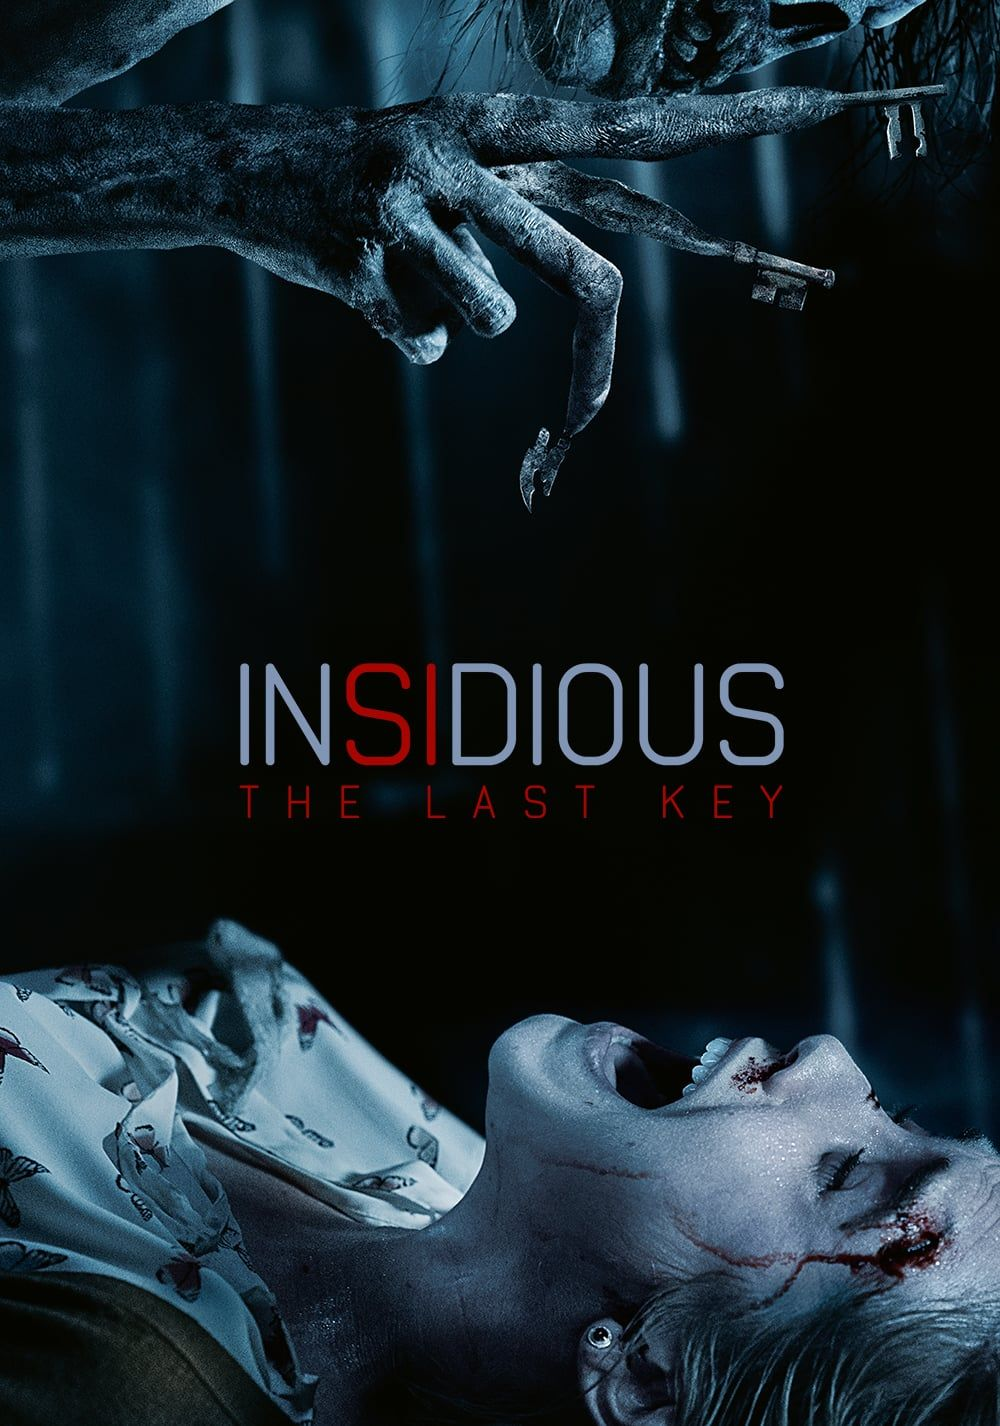 insidious the last key watch free online